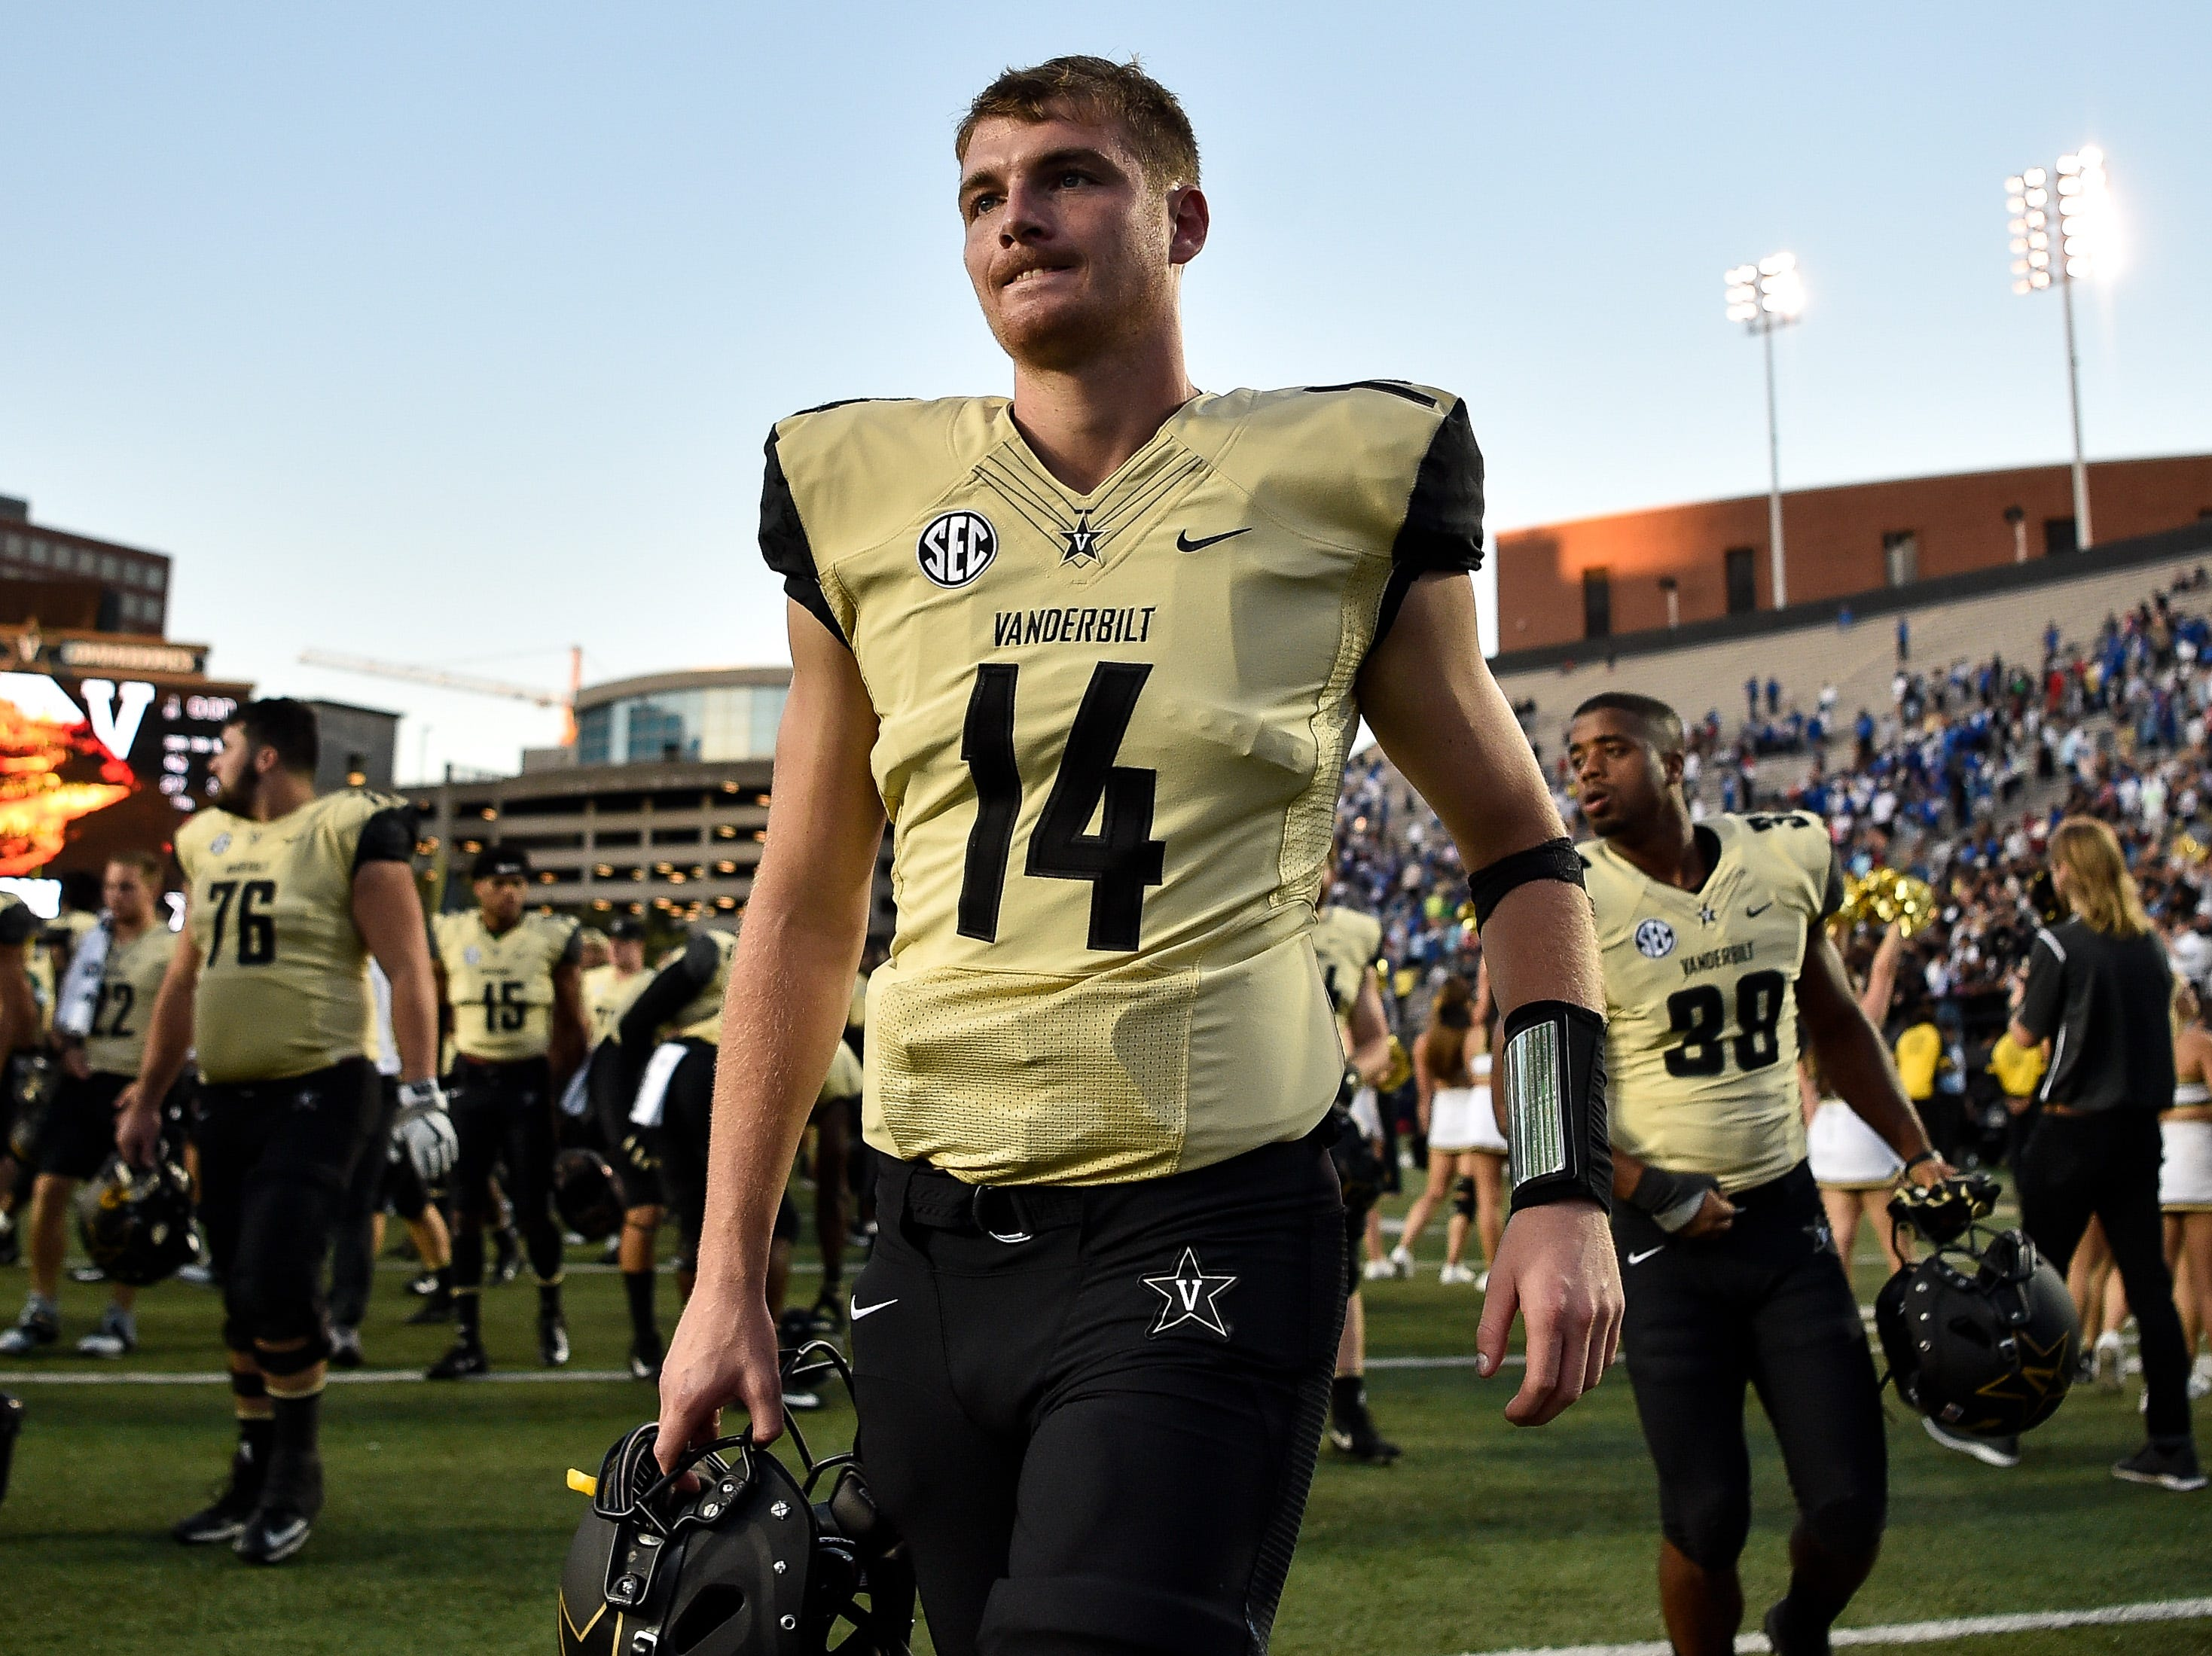 Vanderbilt quarterback Kyle Shurmur (14) exits the field after defeating TSU at Vanderbilt Stadium in Nashville, Tenn., Saturday, Sept. 29, 2018.